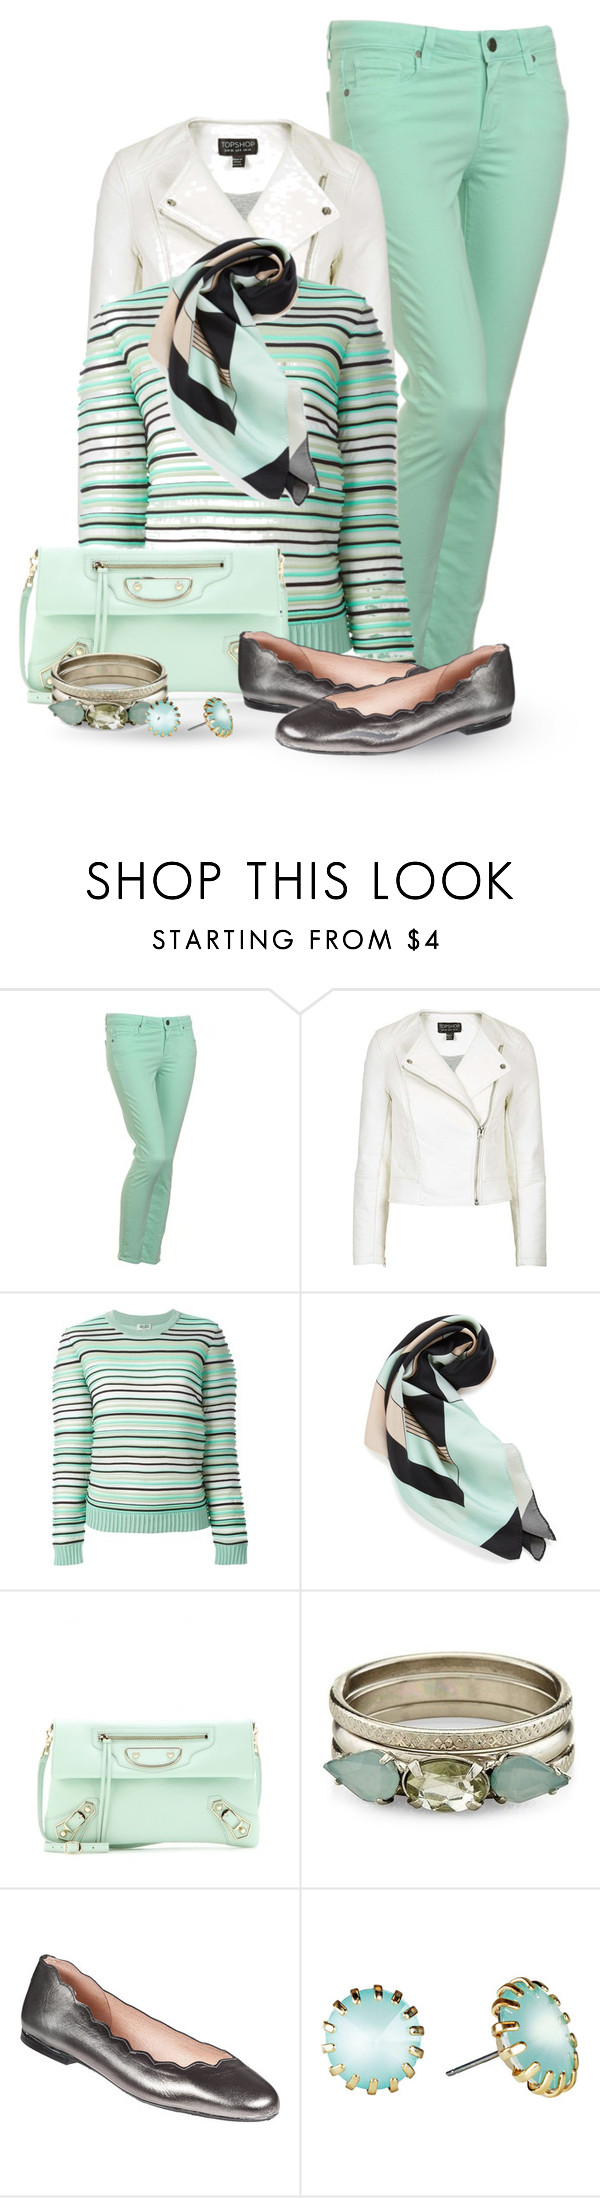 MINT GREEN by regatta-1 on Polyvore featuring moda, Kenzo, Topshop, Paige Denim, French Sole FS/NY, Balenciaga, Love Struck, Louisa Parris, white and mintgreen